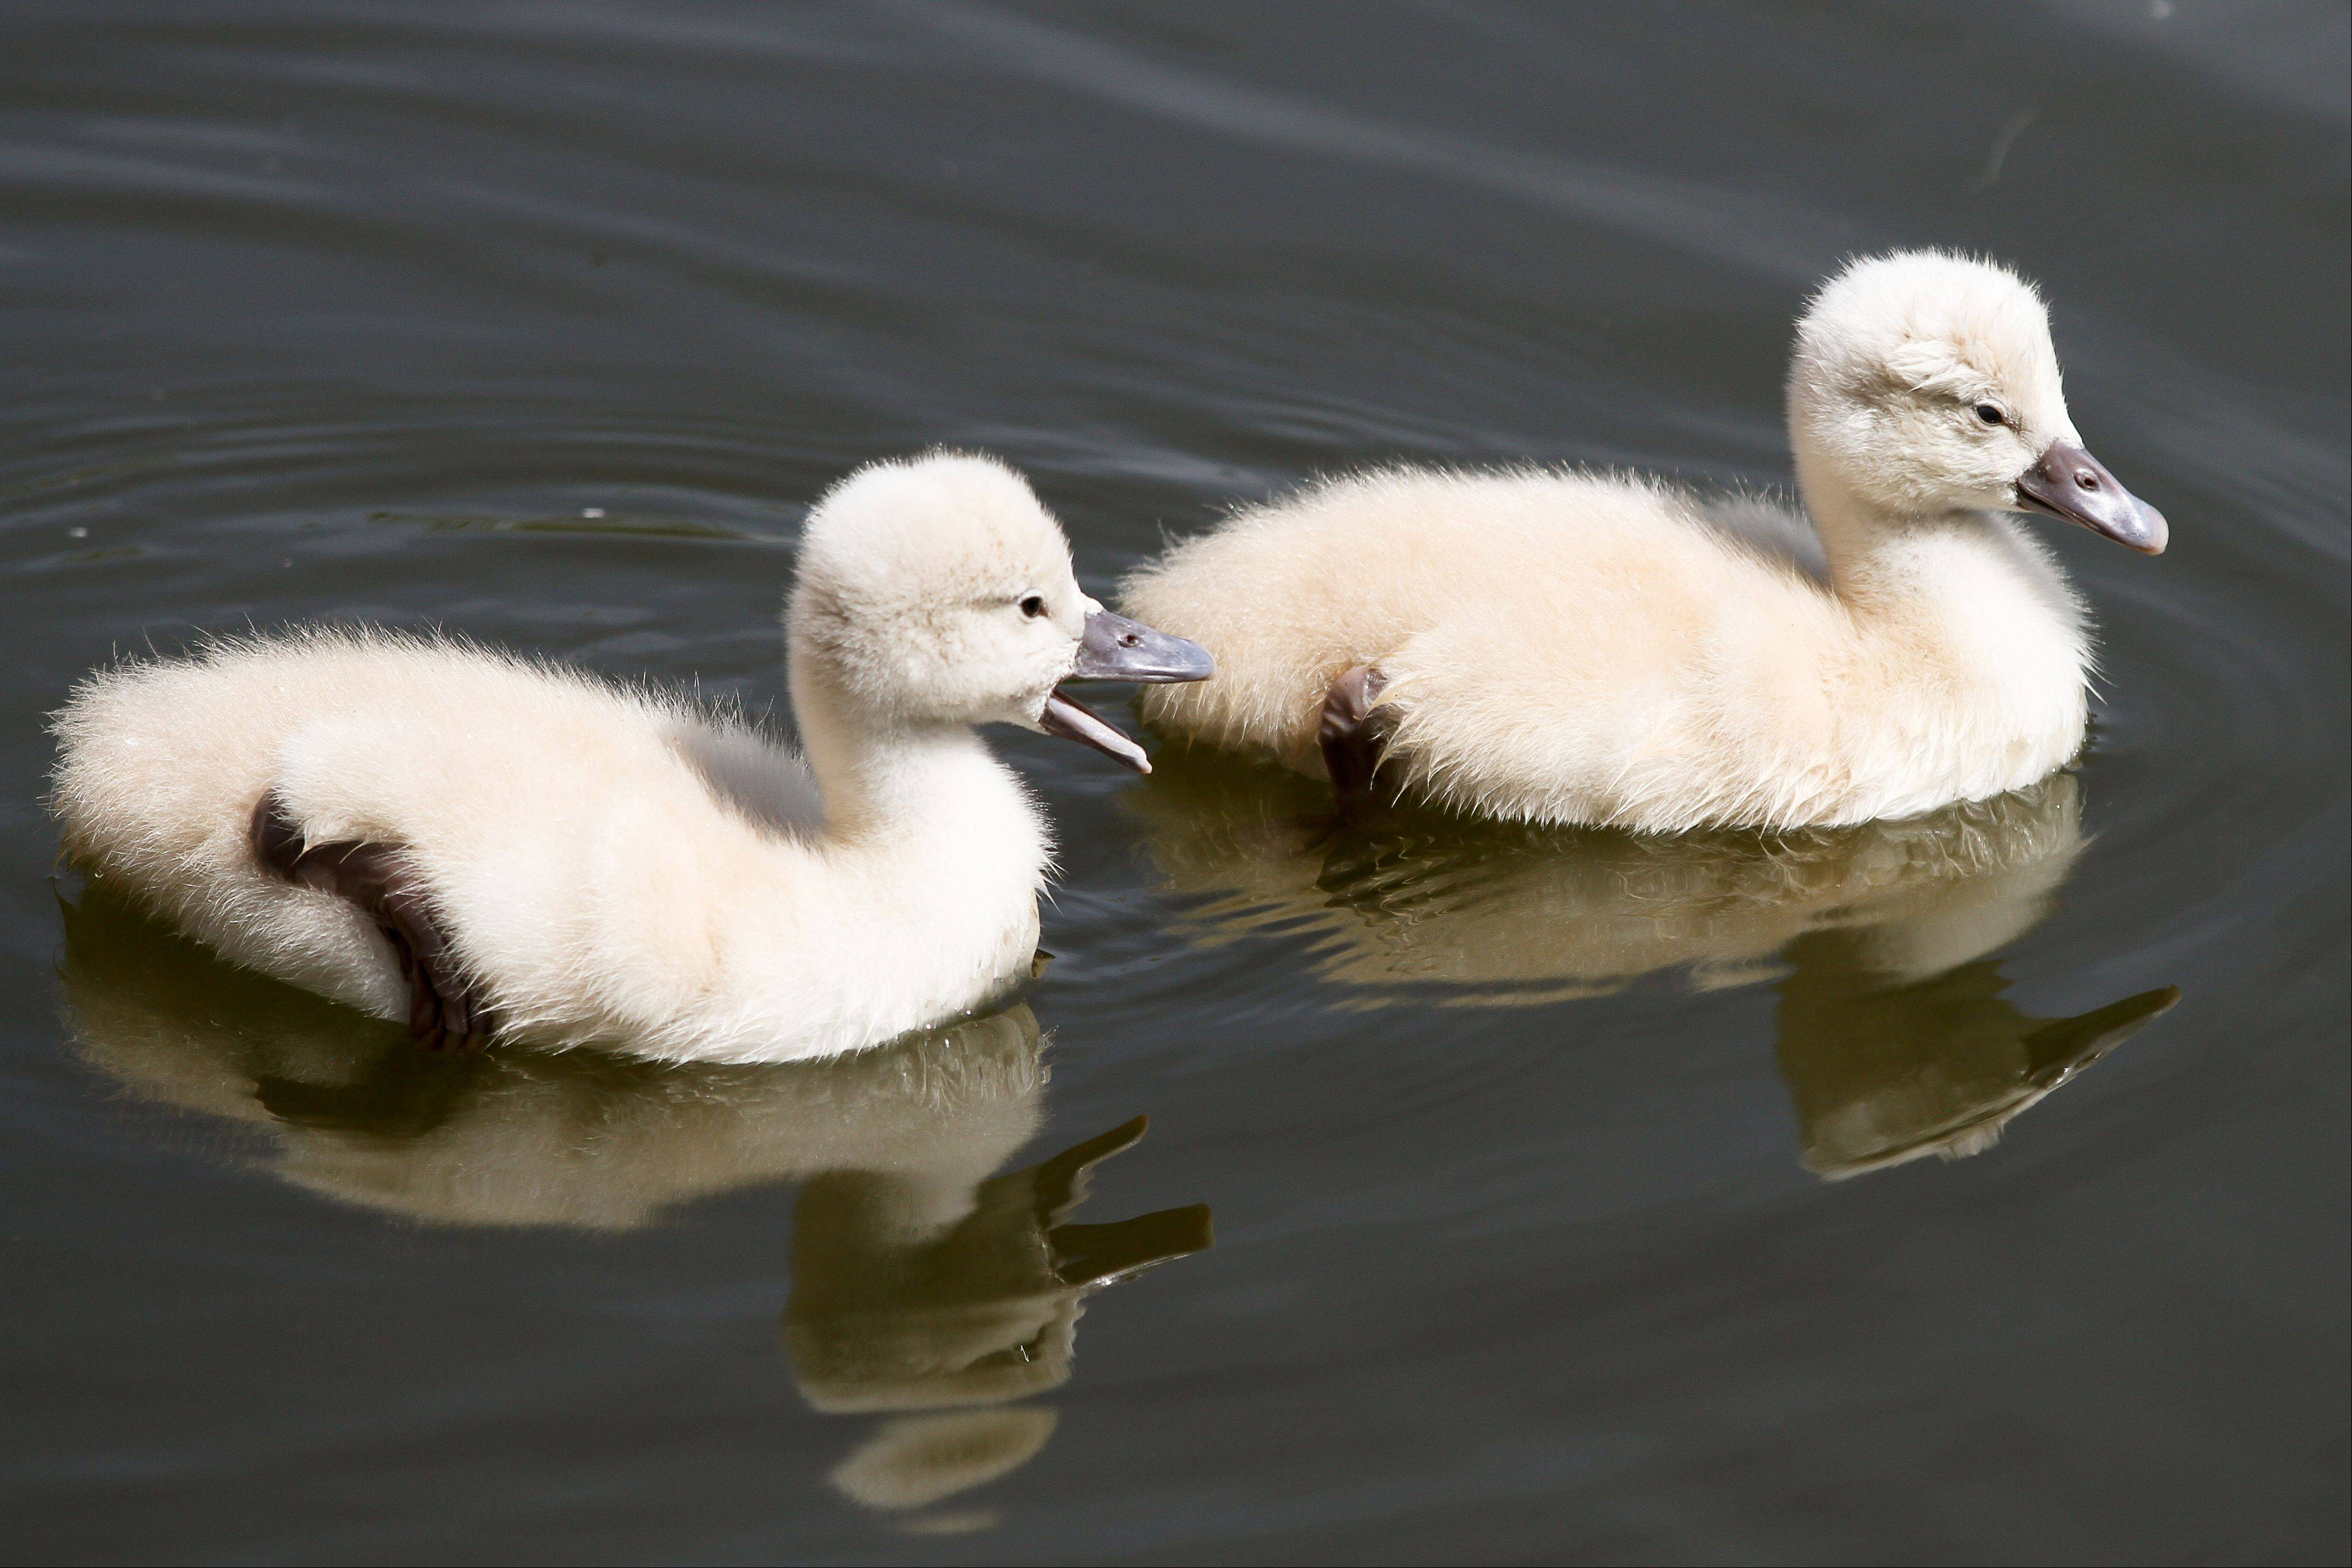 Two baby swans, less than a week old, swim in a Glenview pond in May. Baby swans are called cygnets.